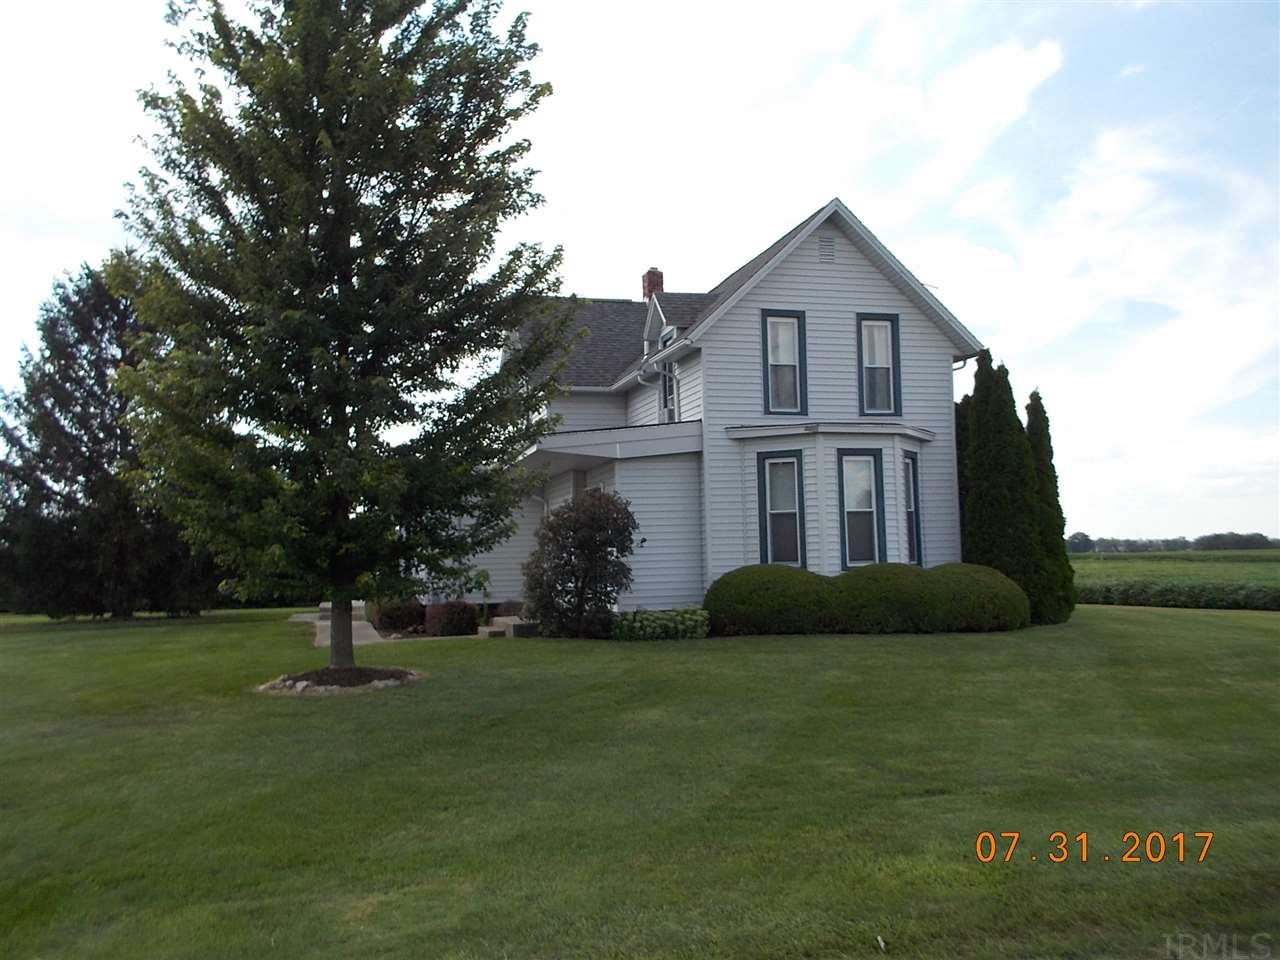 5610 N 400 w, Decatur, IN 46733